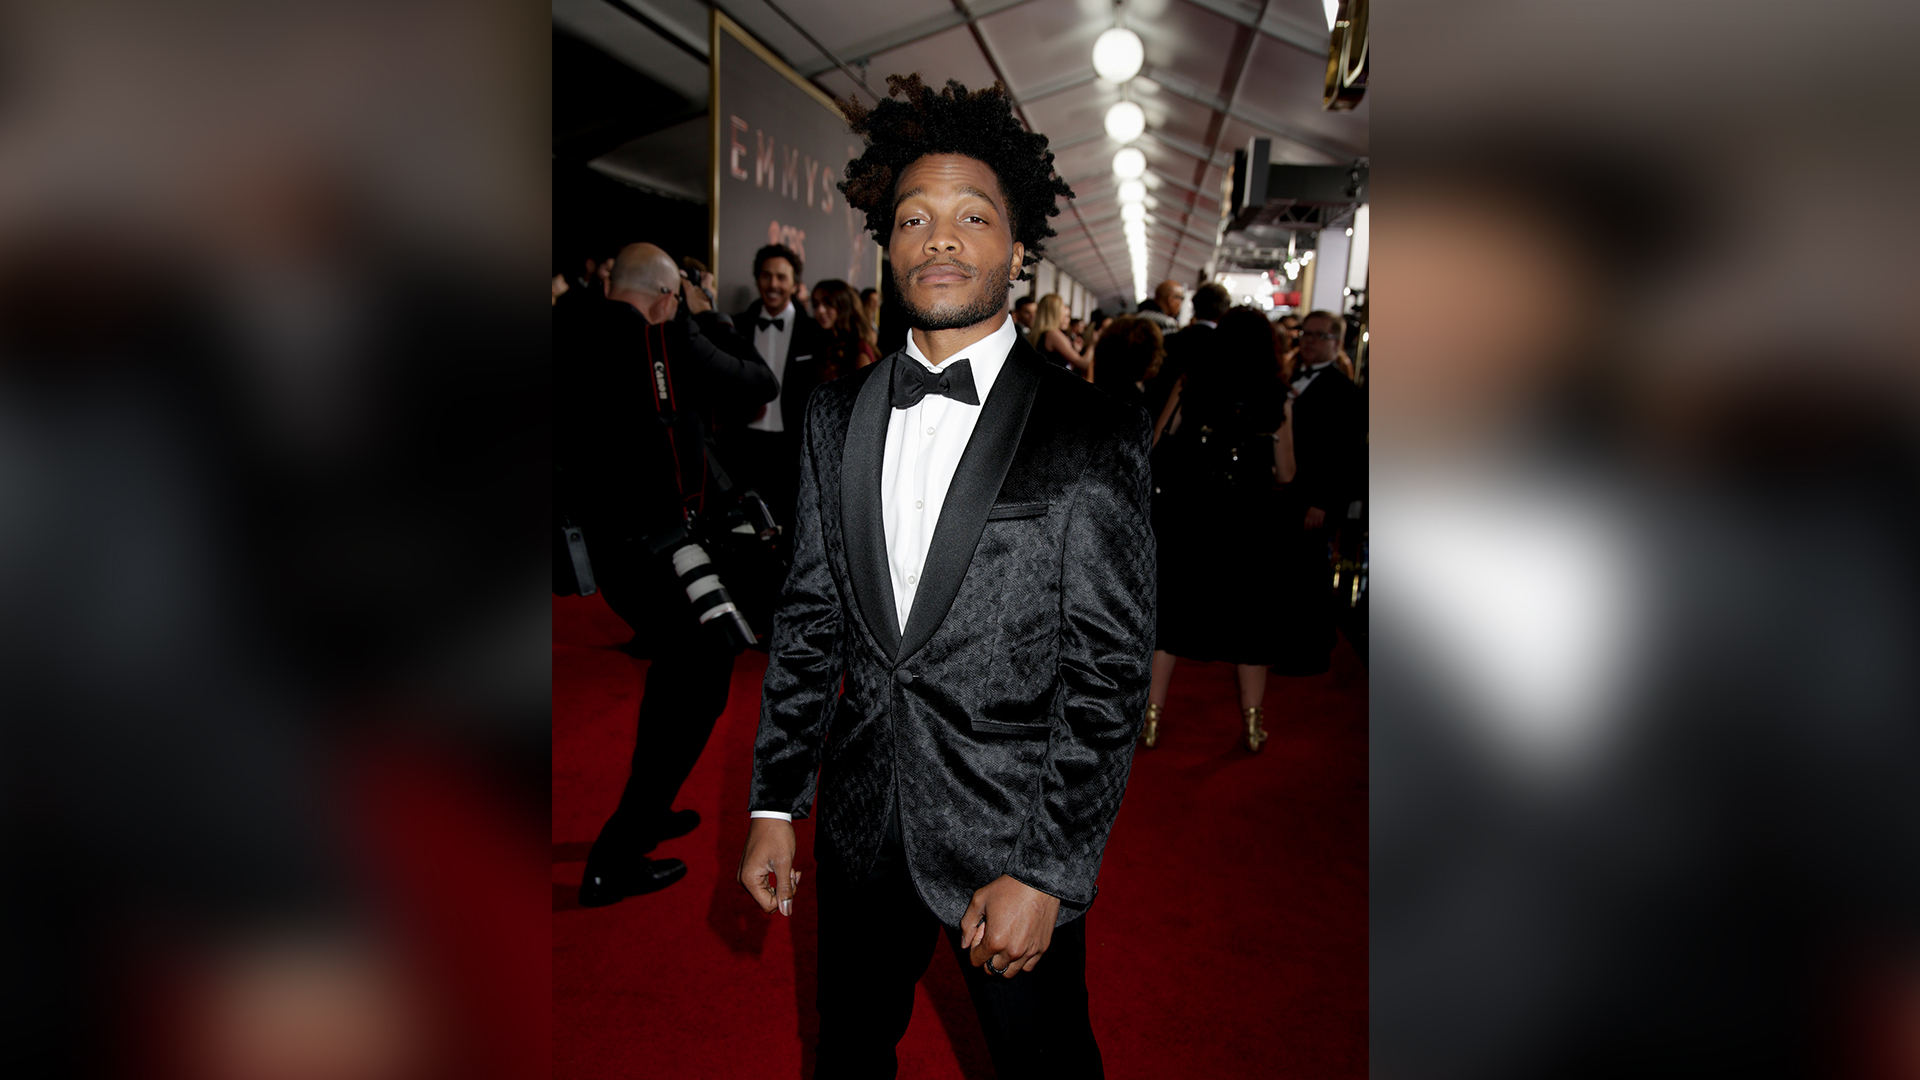 Jermaine Fowler from Superior Donuts